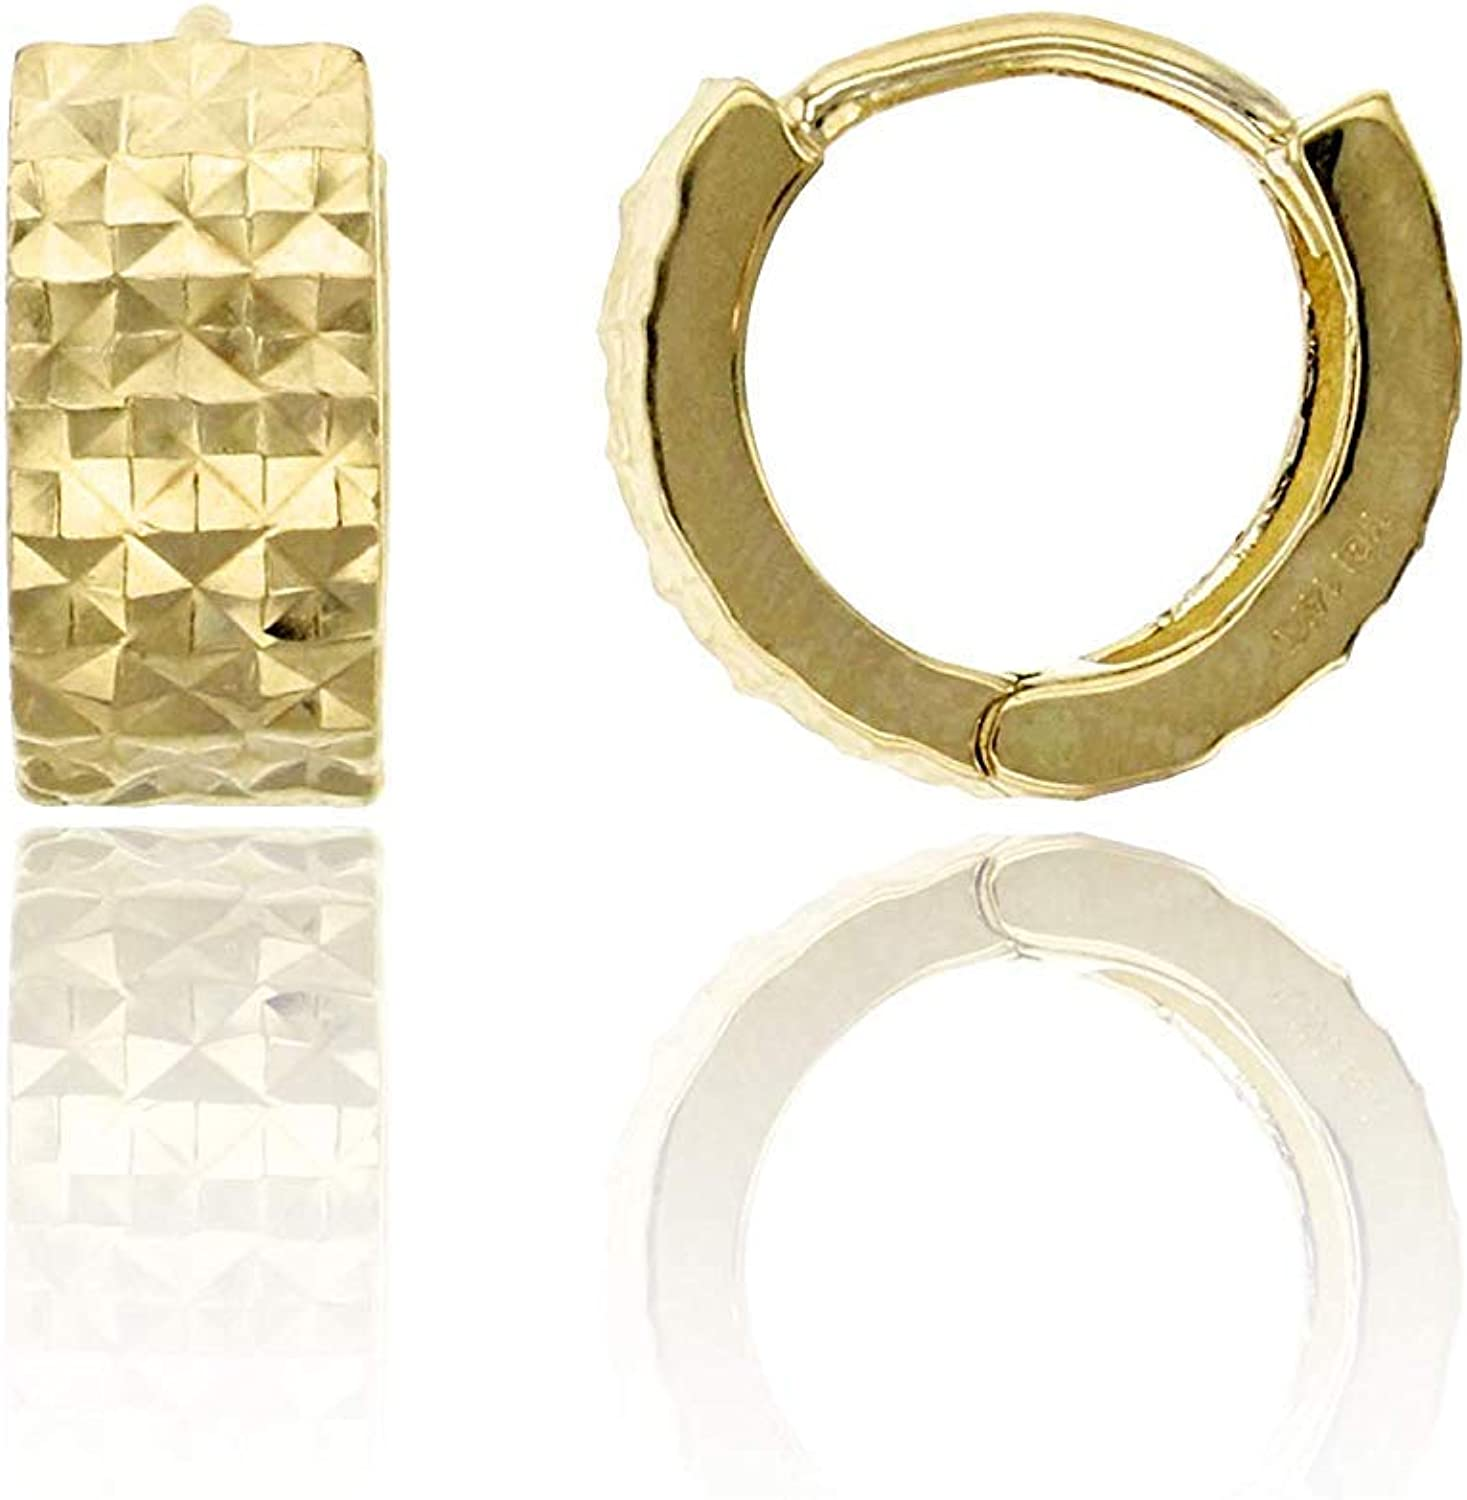 14K Yellow Solid Gold Diamond Cut 4.20mm Thick Huggie Earring   Diamond Cut Huggie Earrings   4.20x10mm   Endless Huggie Hoop Earrings   Solid Gold Earrings for Women, Teens and Kids